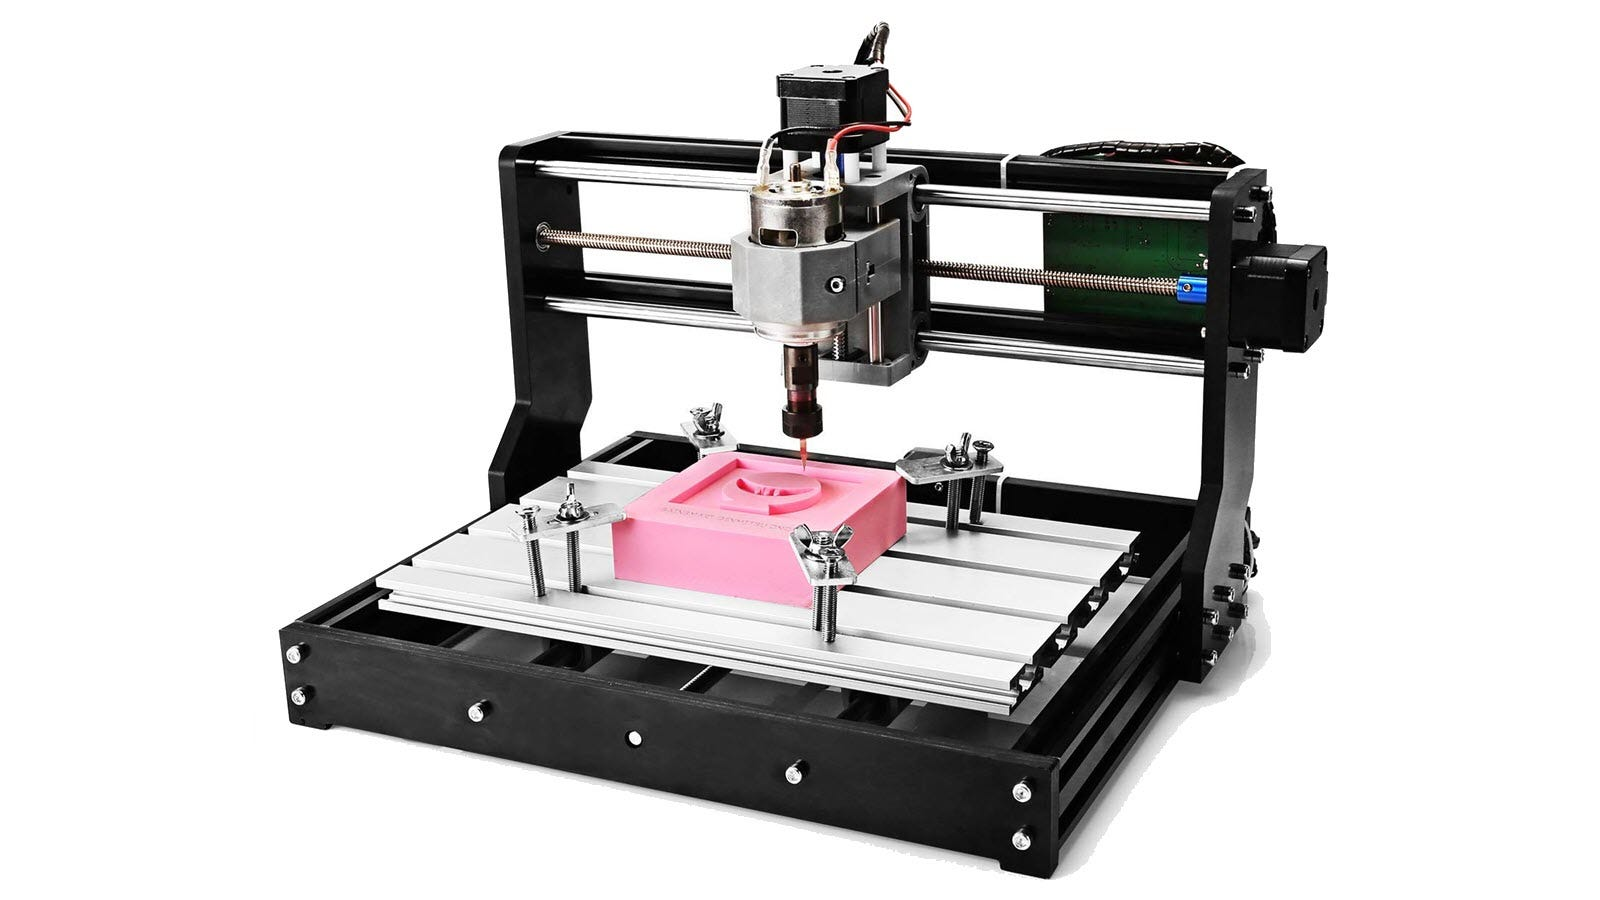 A Genmitsu CNC 3018-PRO cutting into a small pink block.